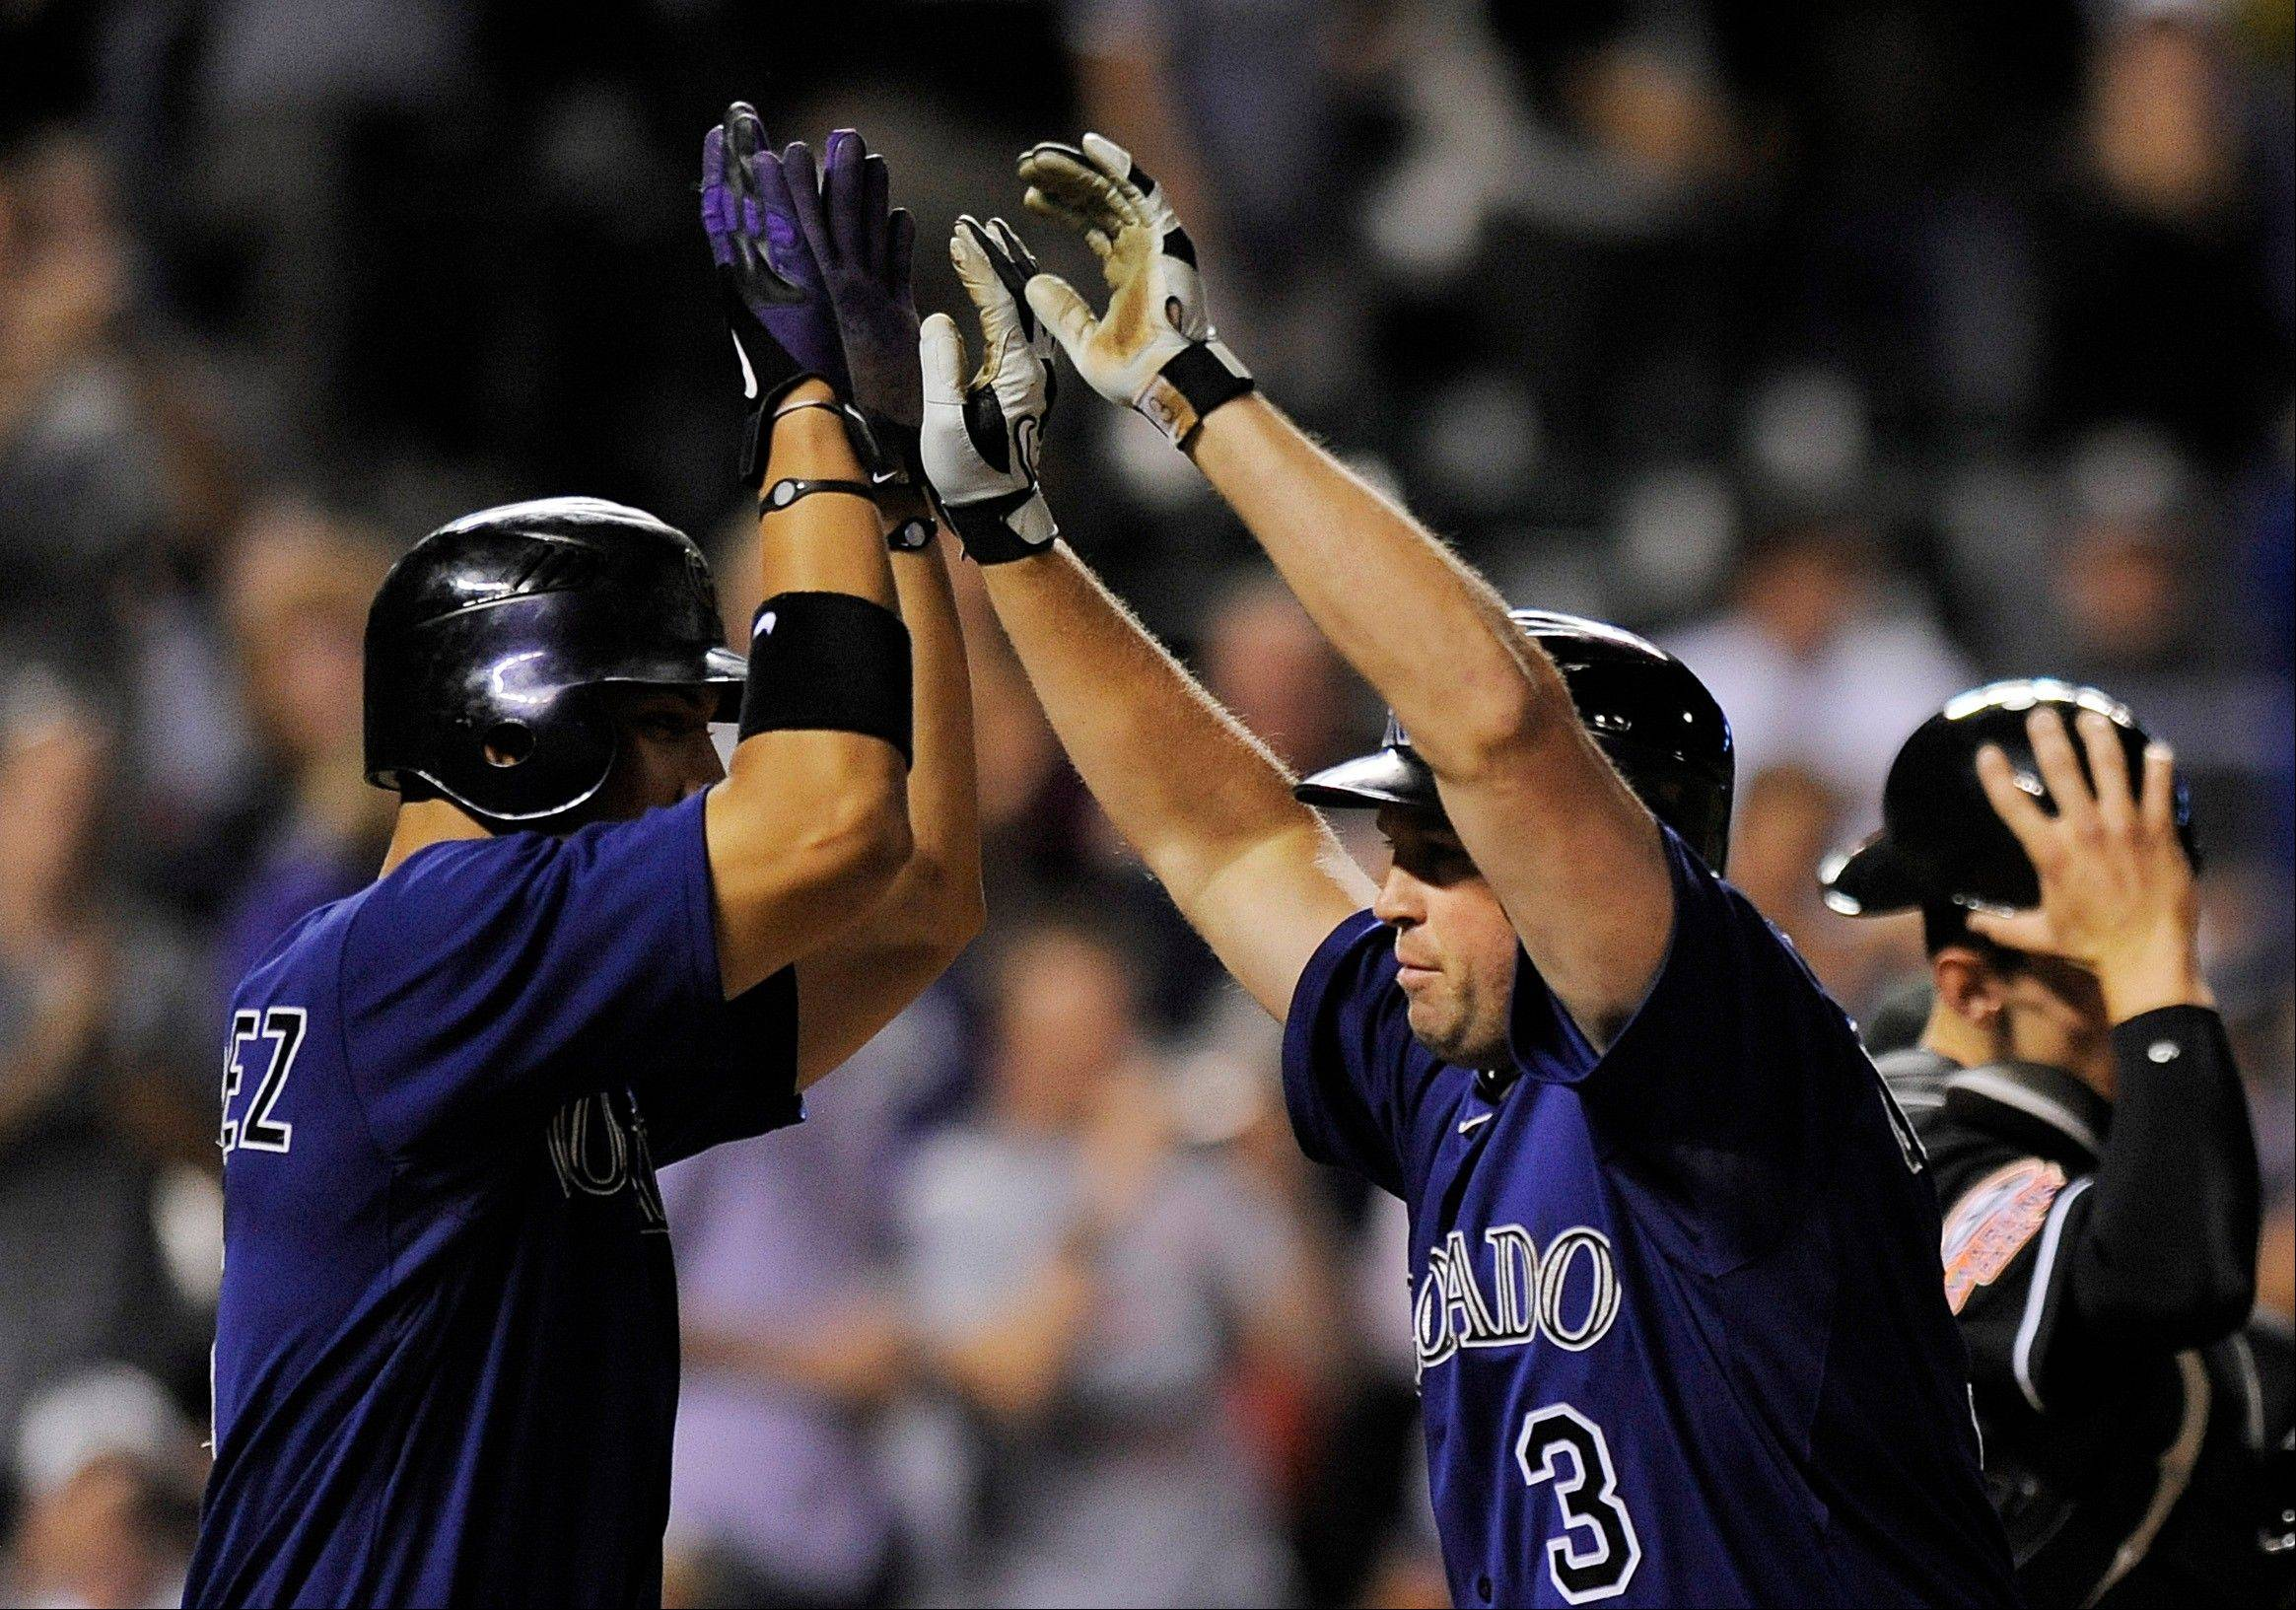 The Rockies' Carlos Gonzalez, left, congratulates Michael Cuddyer on his two-run home run in the sixth inning Thursday against the Marlins in Denver.